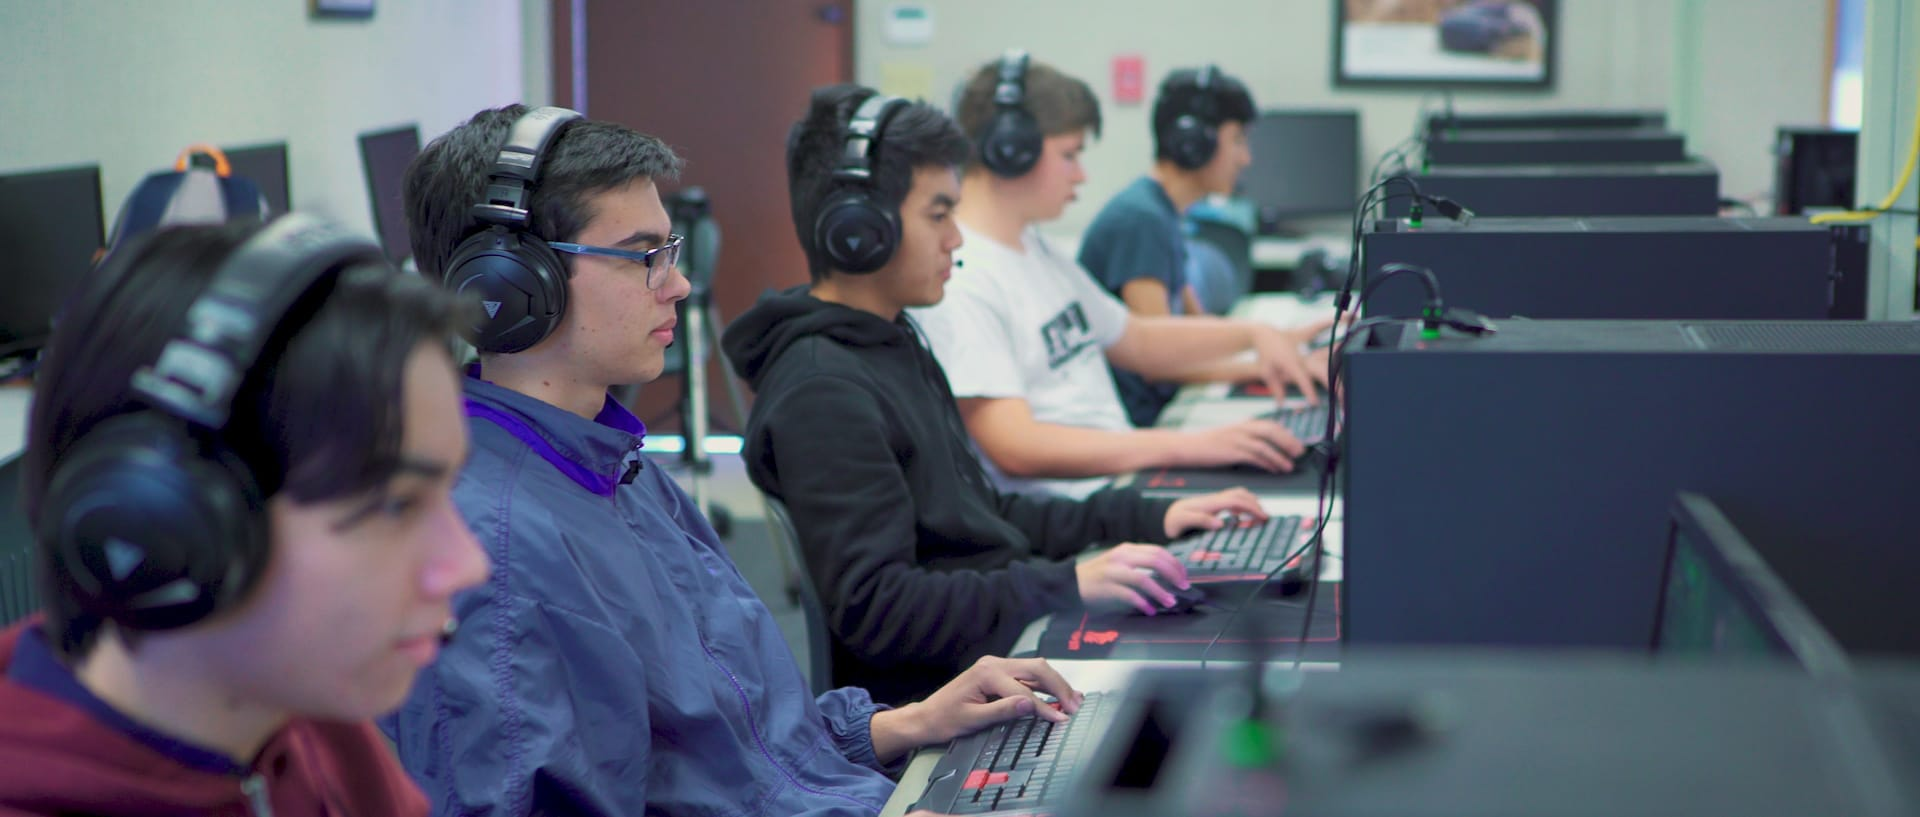 Image result for Video gaming becomes official after-school league at US high schools